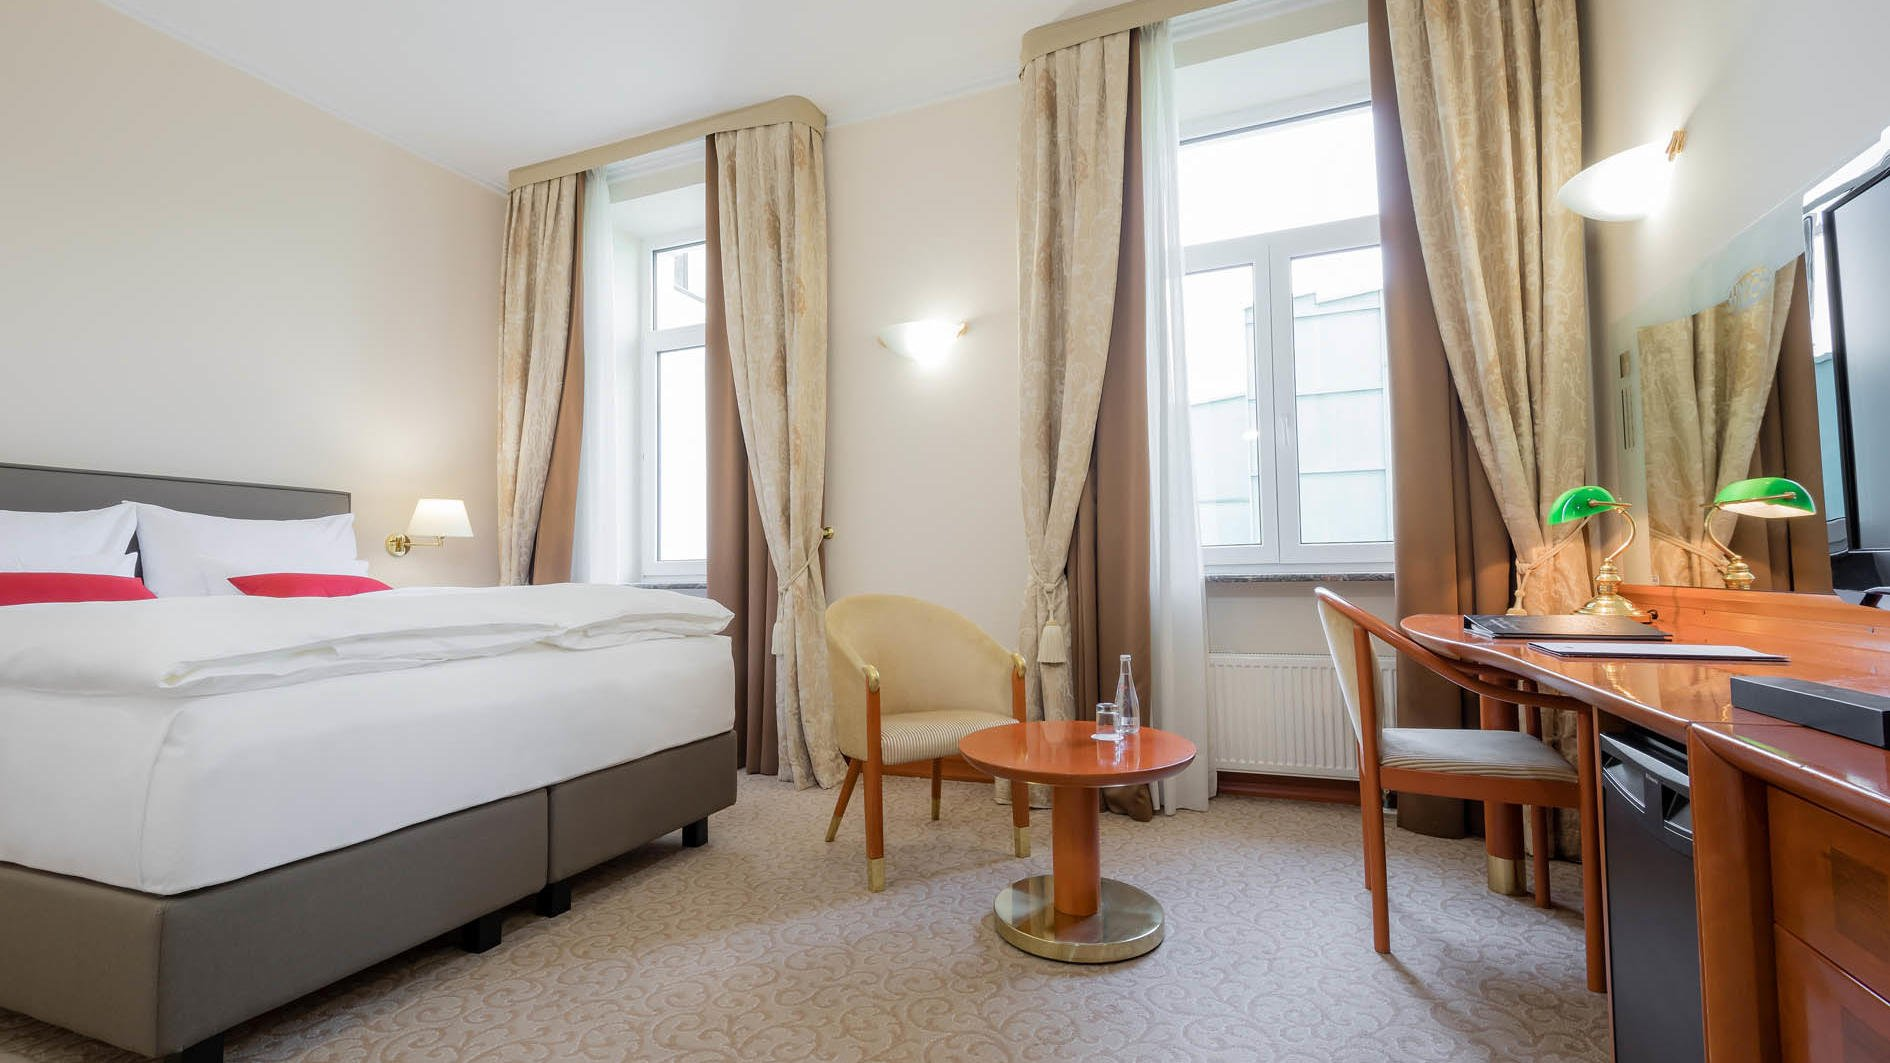 Comfort Queen Room at Union Hotels Collection in Ljubljana